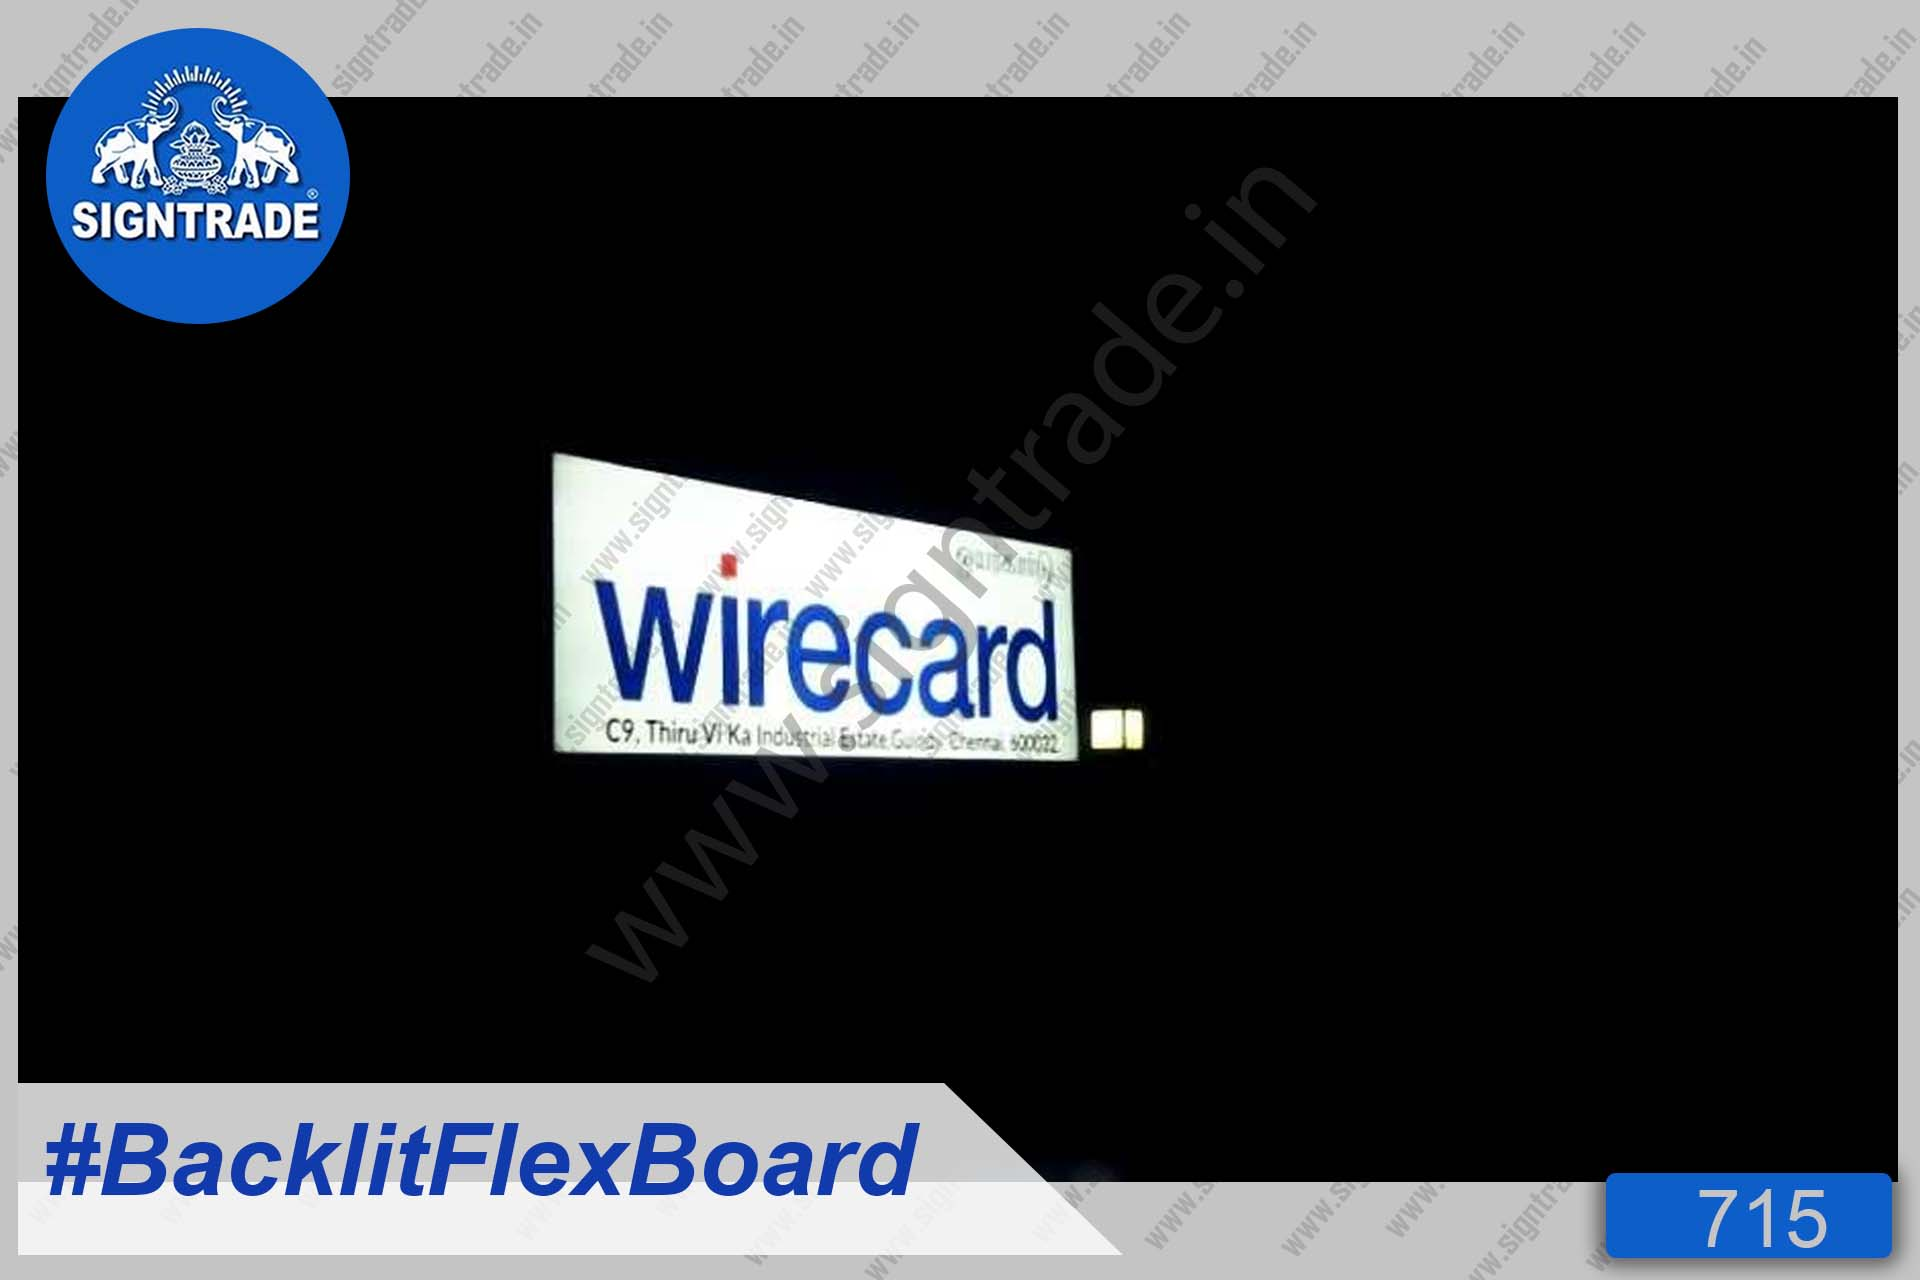 Wirecard Financial services company - Backlit Flex Board